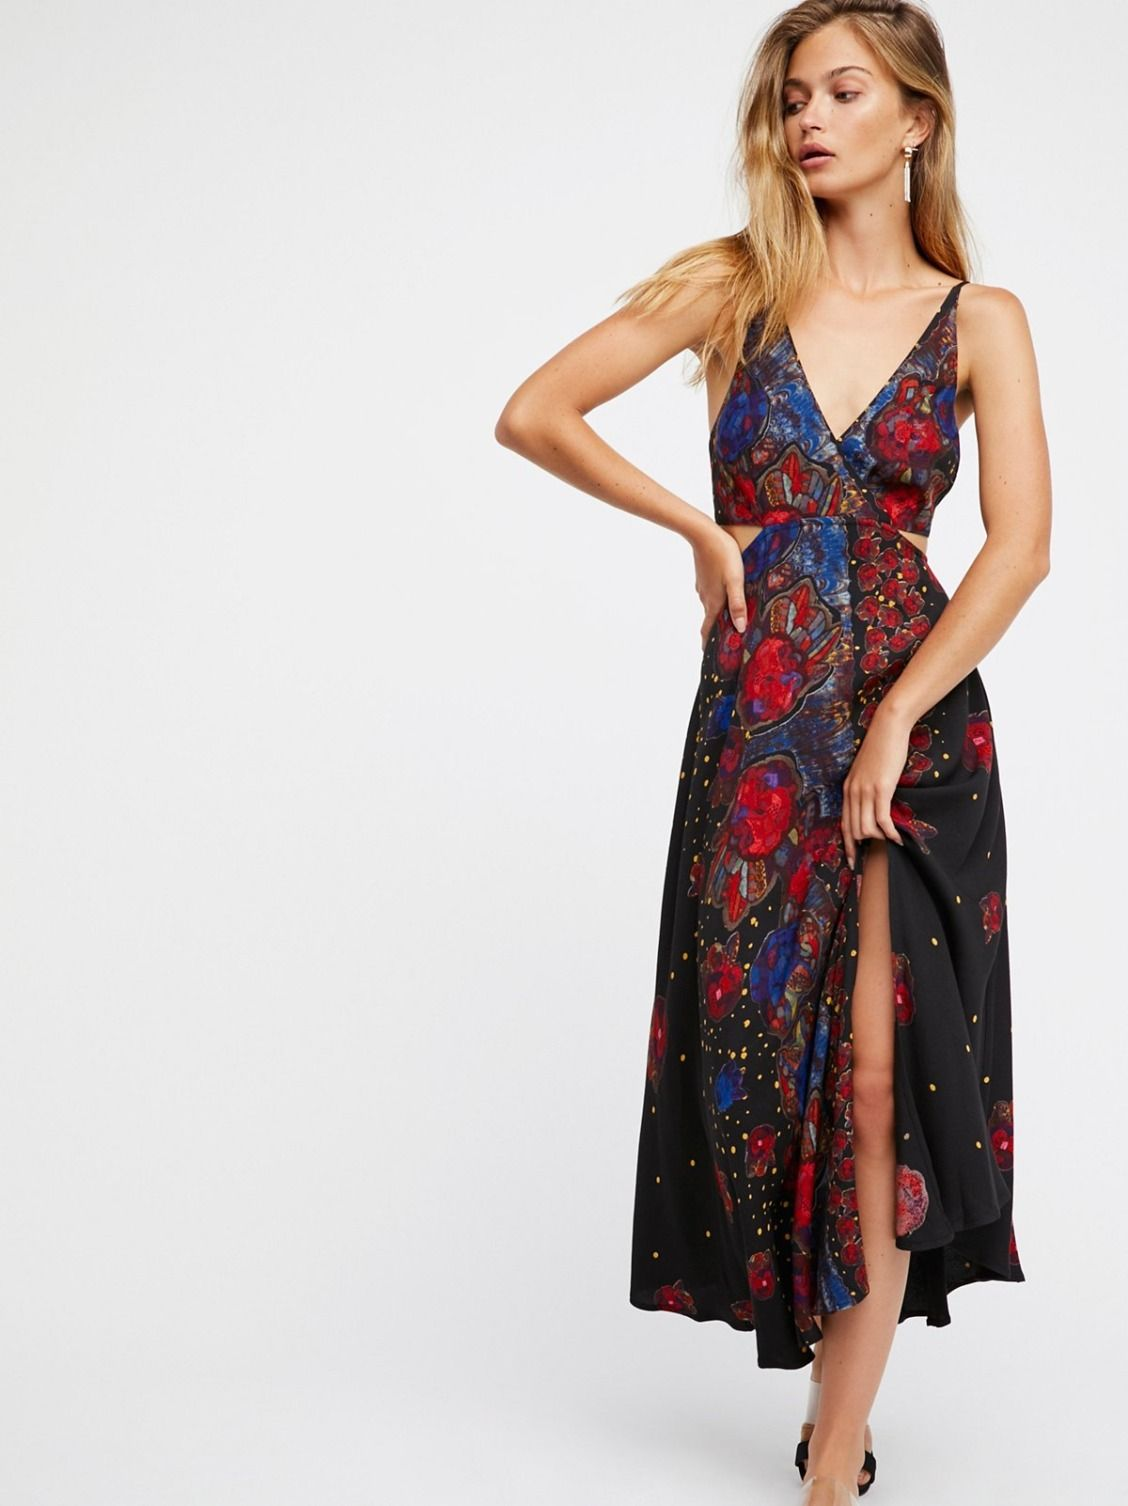 Feelin' Good Midi | Mixed print midi dress featuring skin baring side cutout details. * Front slit * Wrapped design at the bust with side button closures * Partially lined * Adjustable straps * Hidden side zipper closure